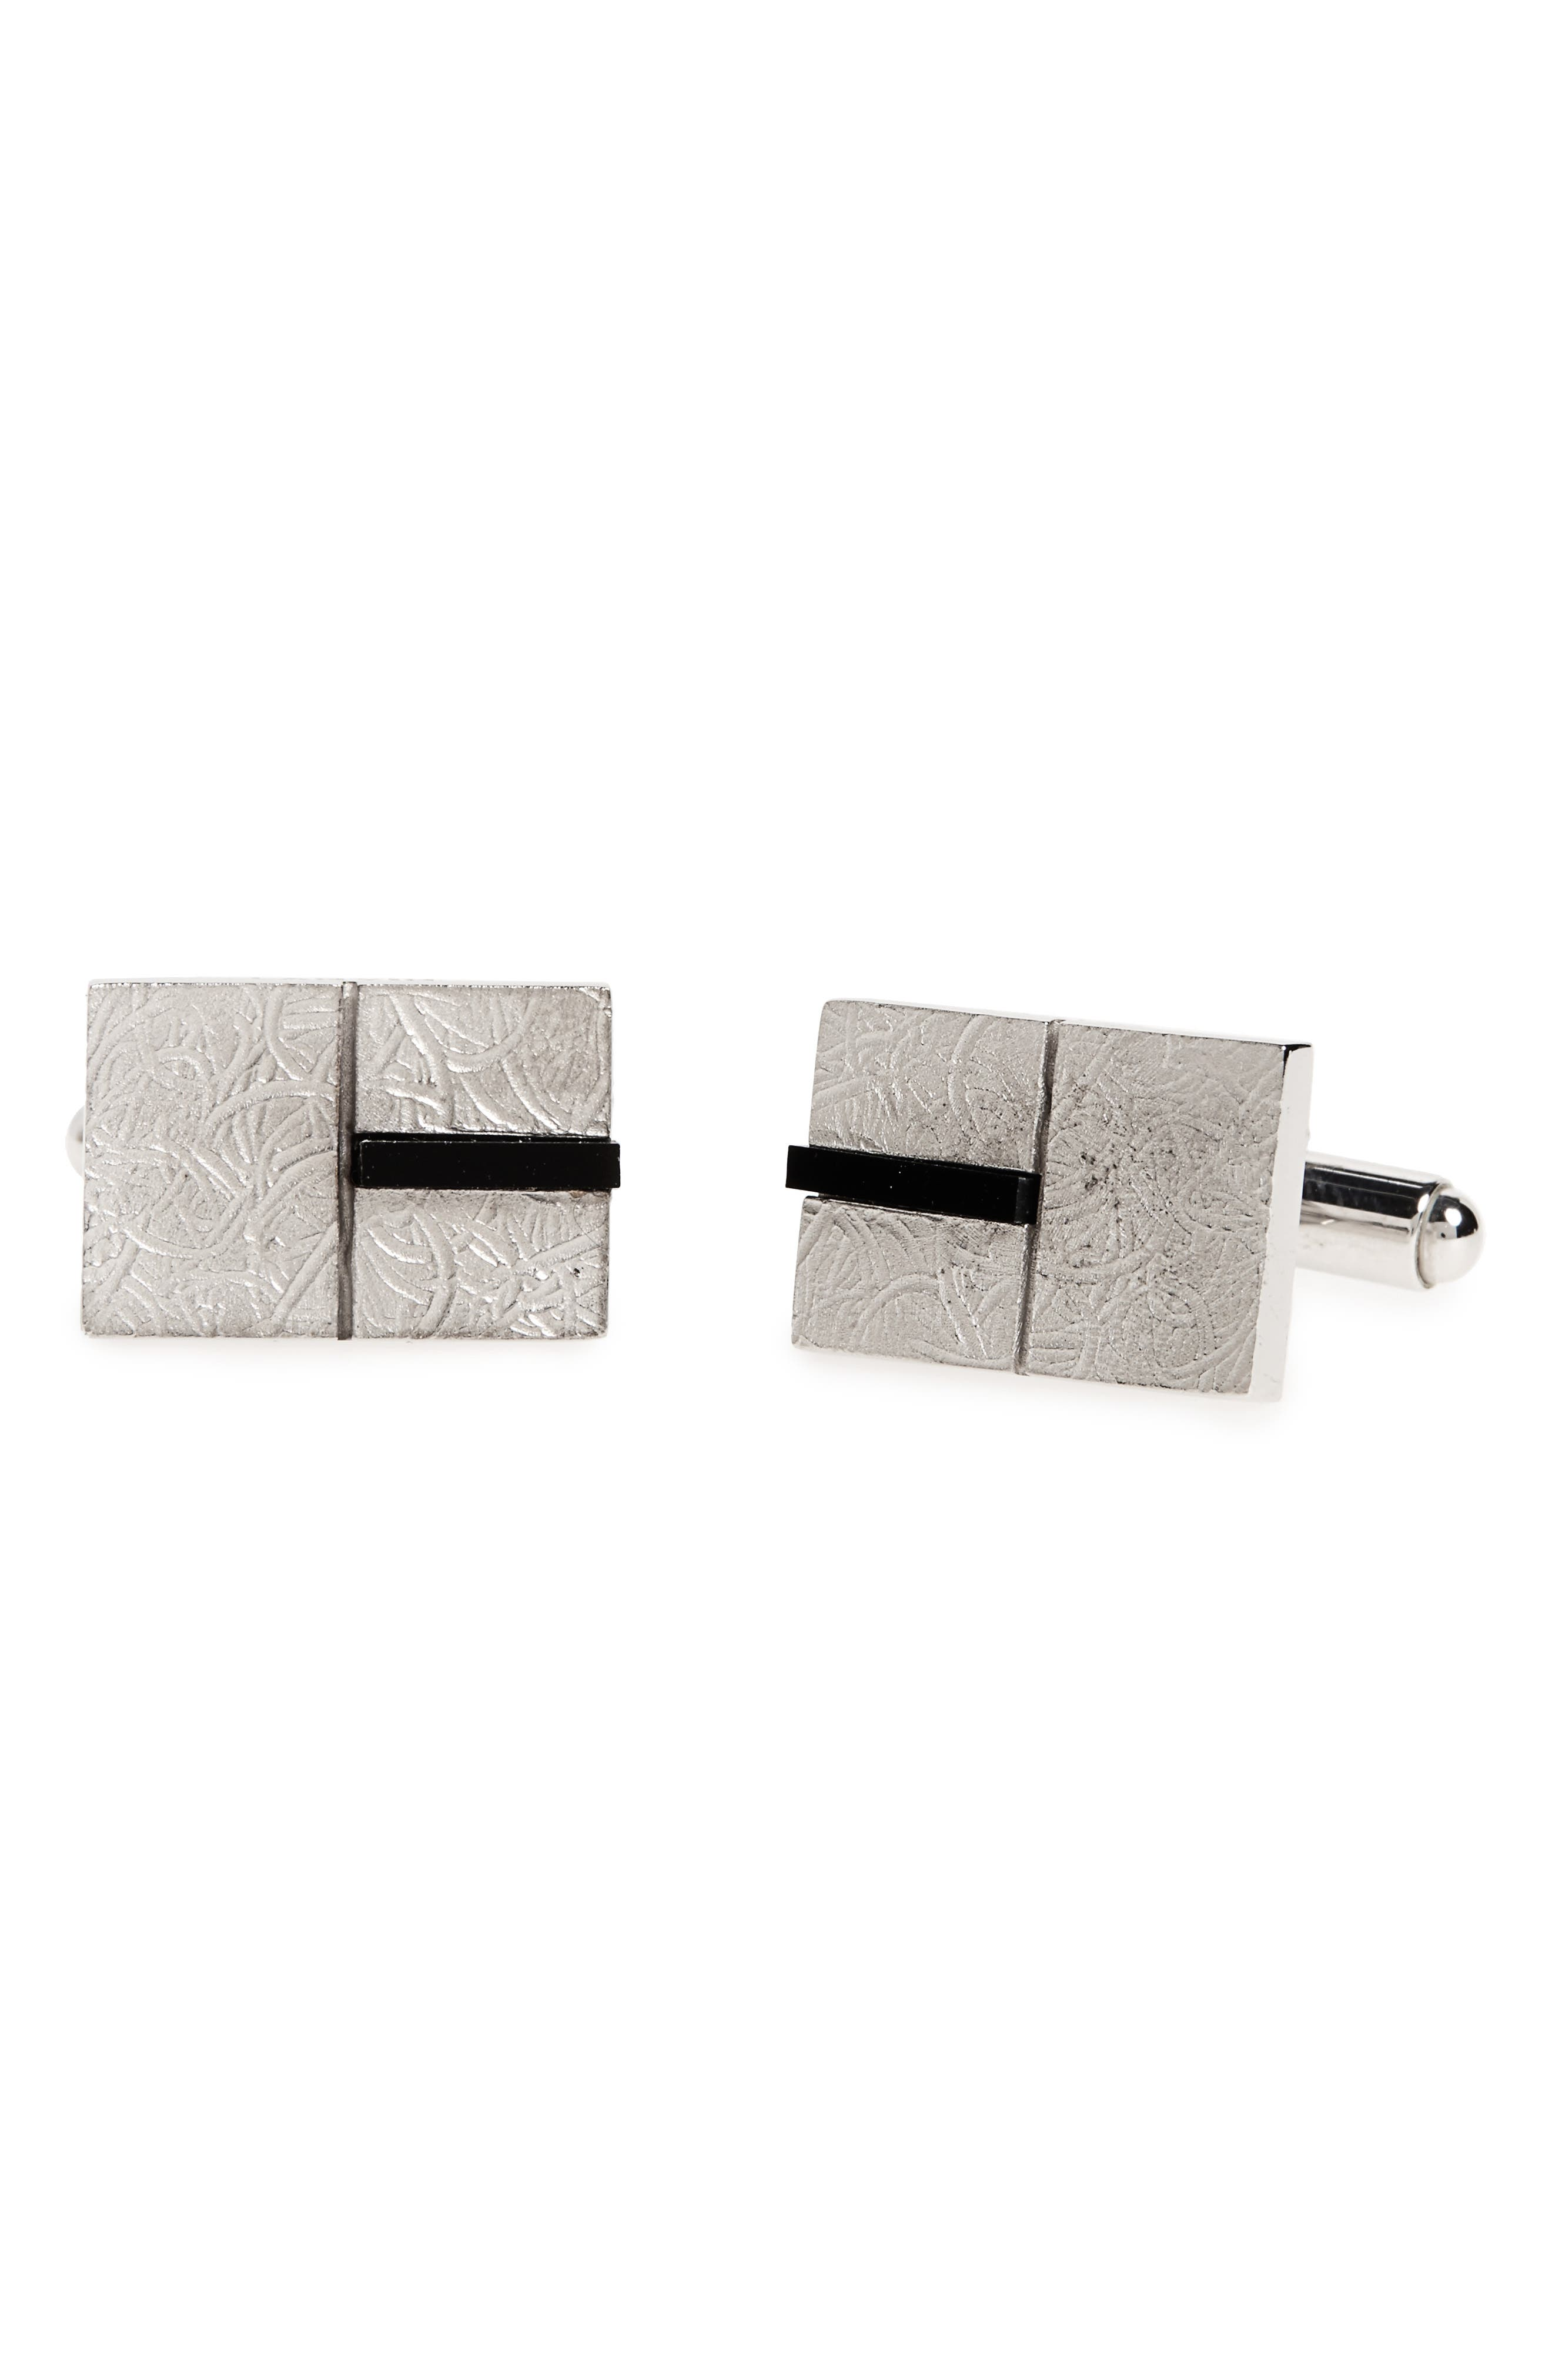 Squares Cuff Links,                         Main,                         color, Rhodium Plated